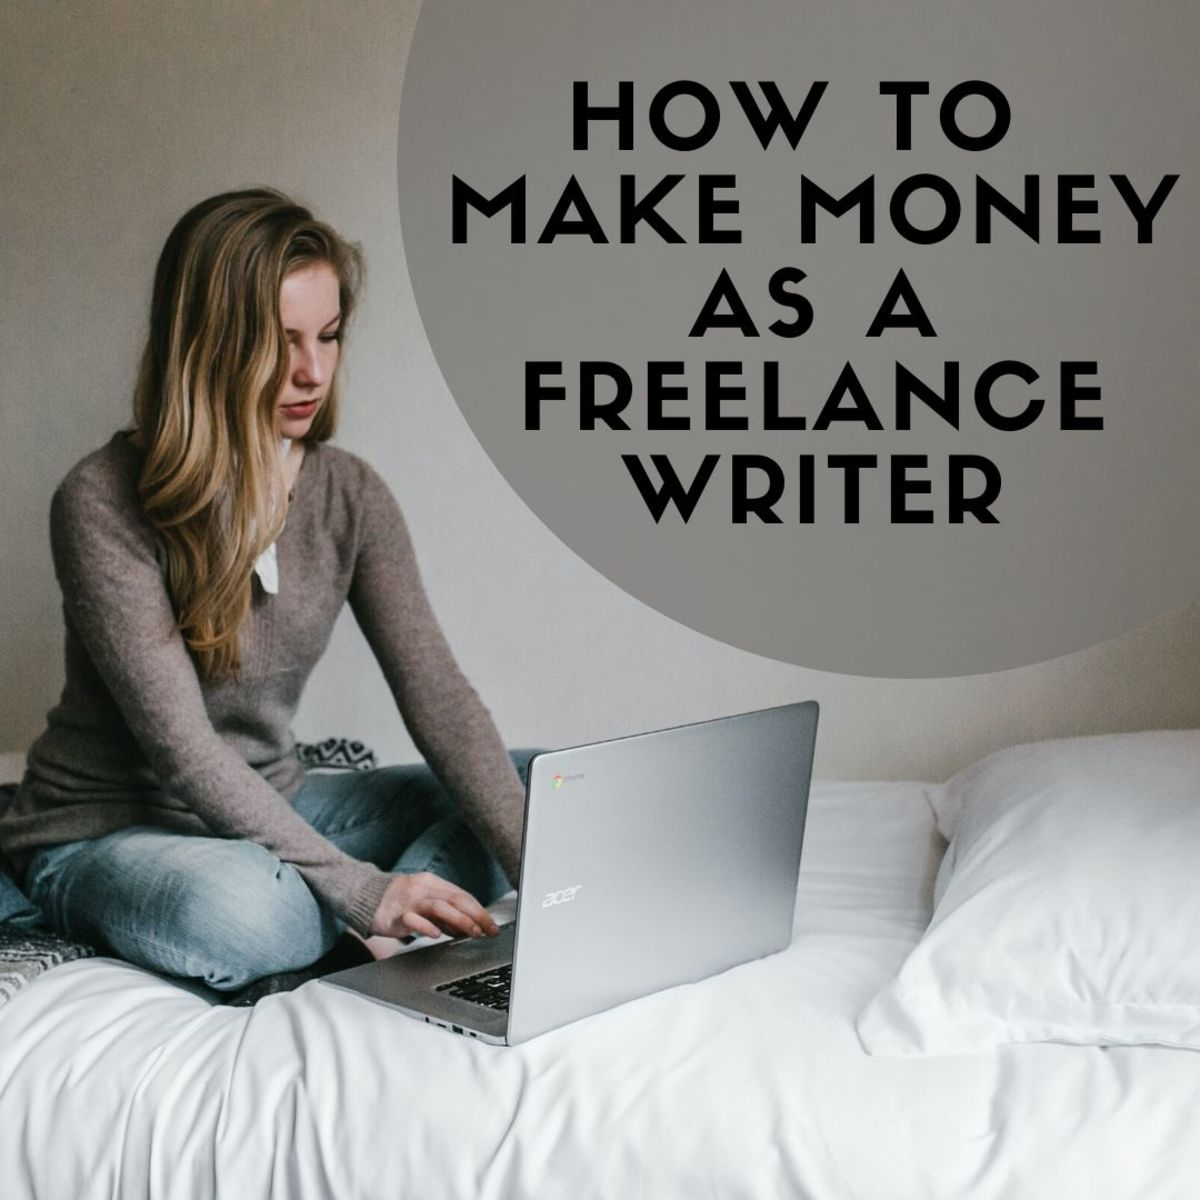 Learn three ways you can make money as a freelance writer.